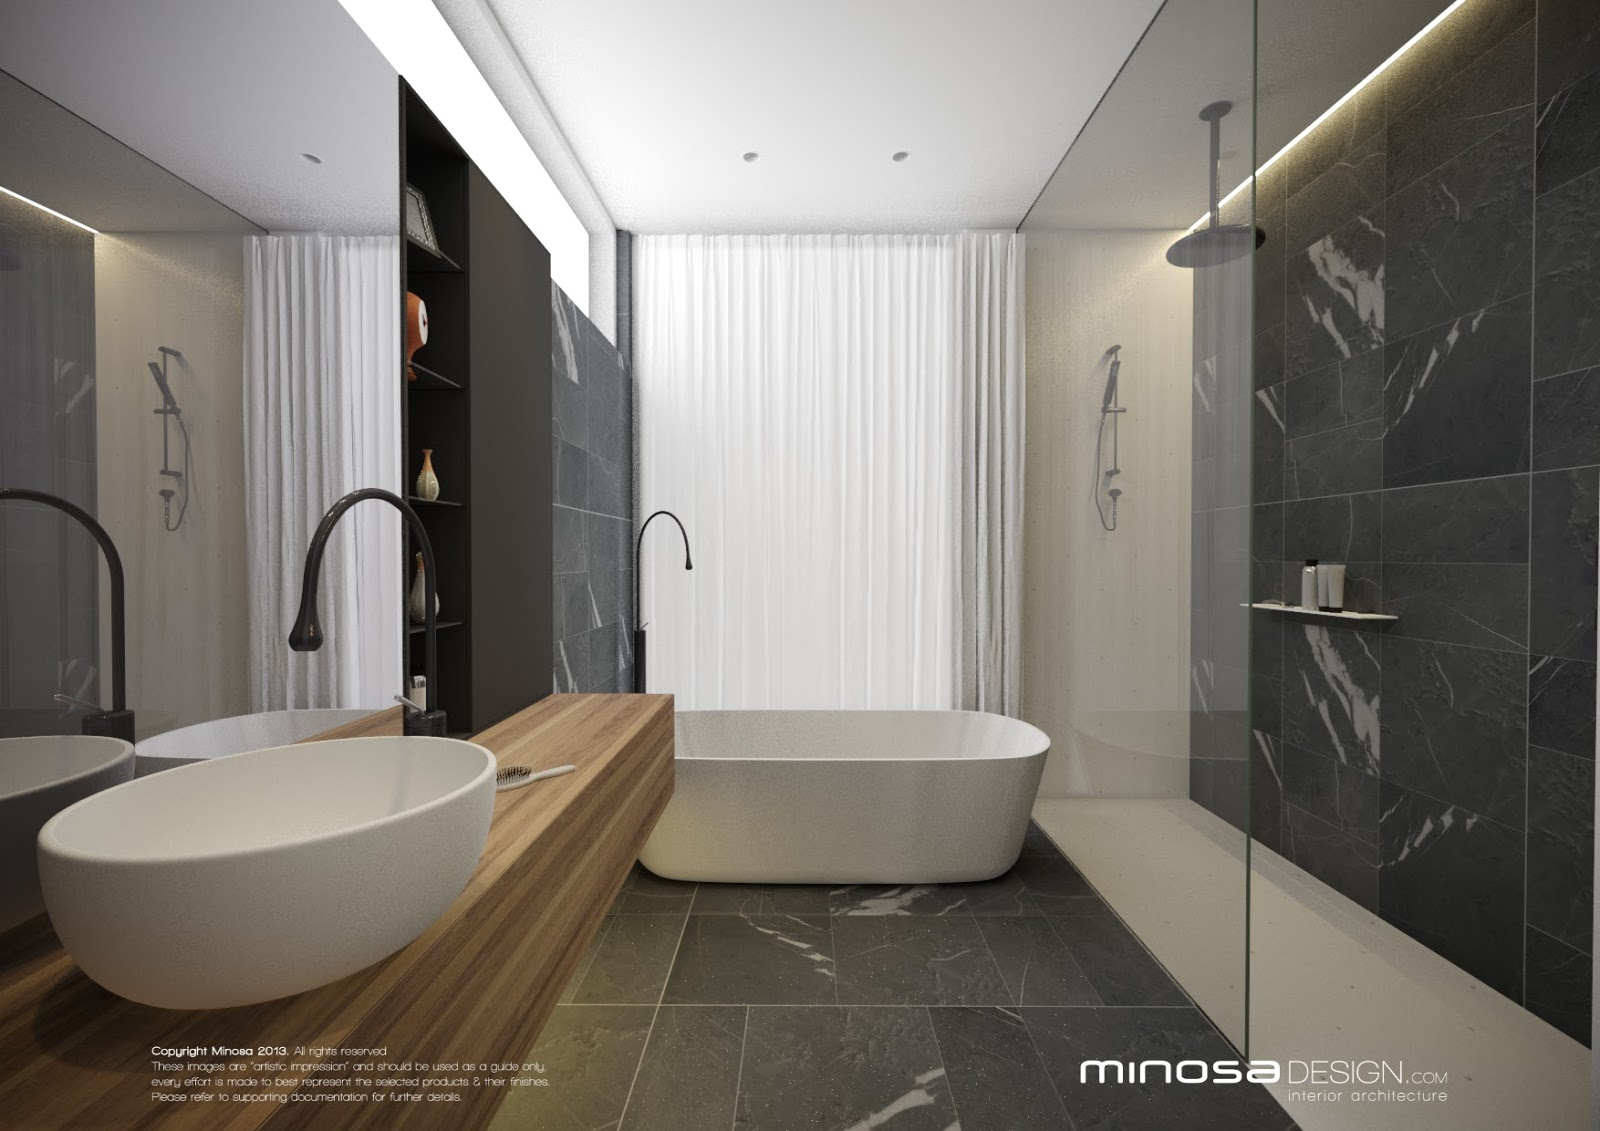 minosa modern bathroom design to share